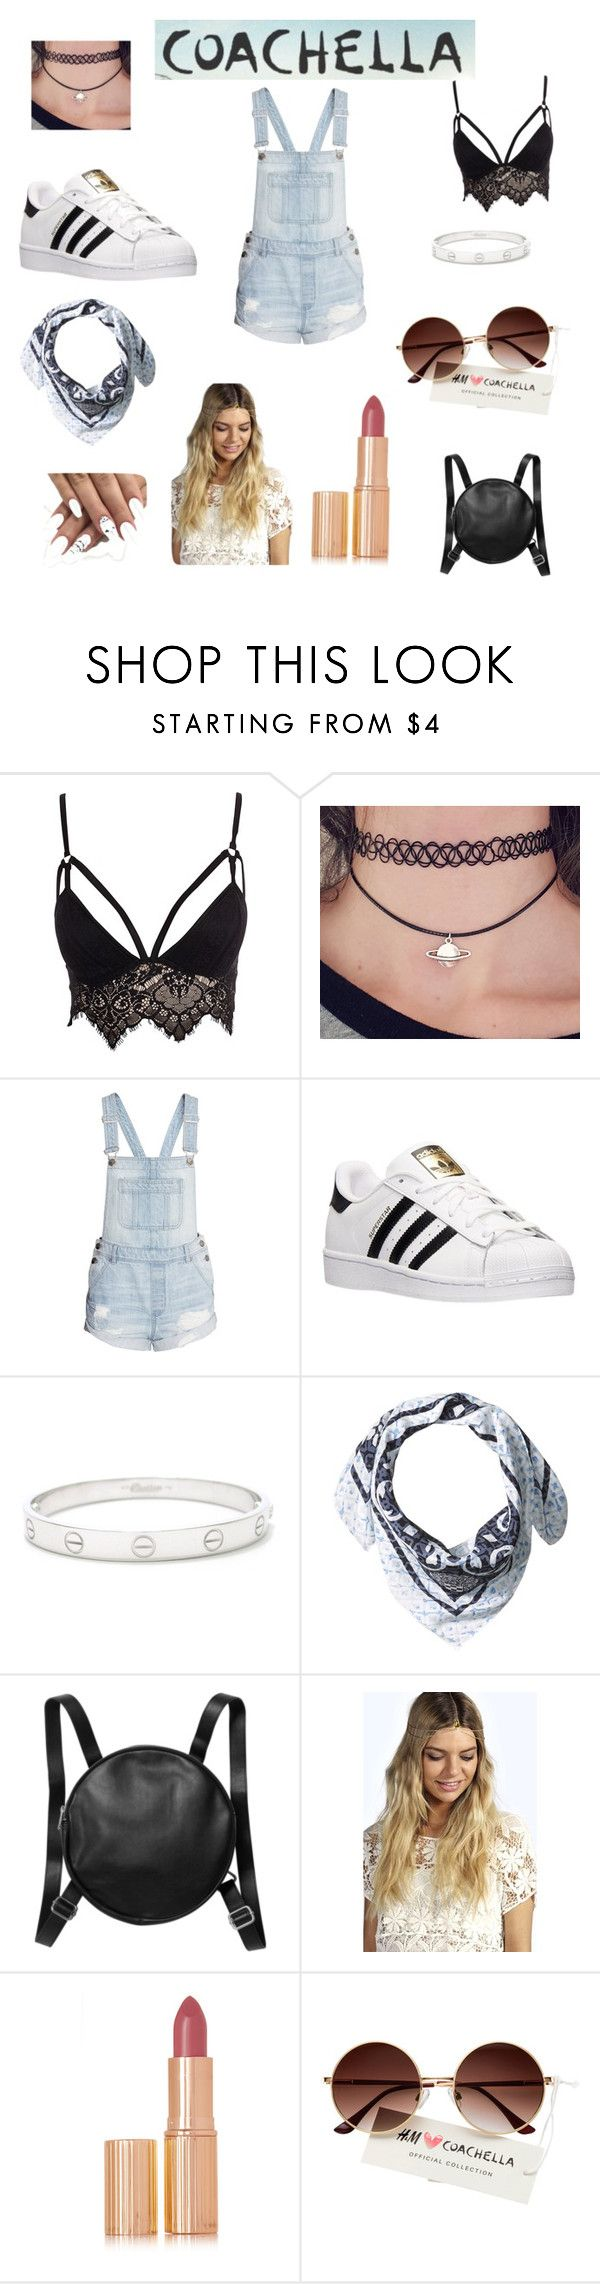 """""""Coachella weekend 1 day 2 """" by chloe-xci ❤ liked on Polyvore featuring Club L, adidas, Cartier, Vince Camuto, Monki, Boohoo and Charlotte Tilbury"""